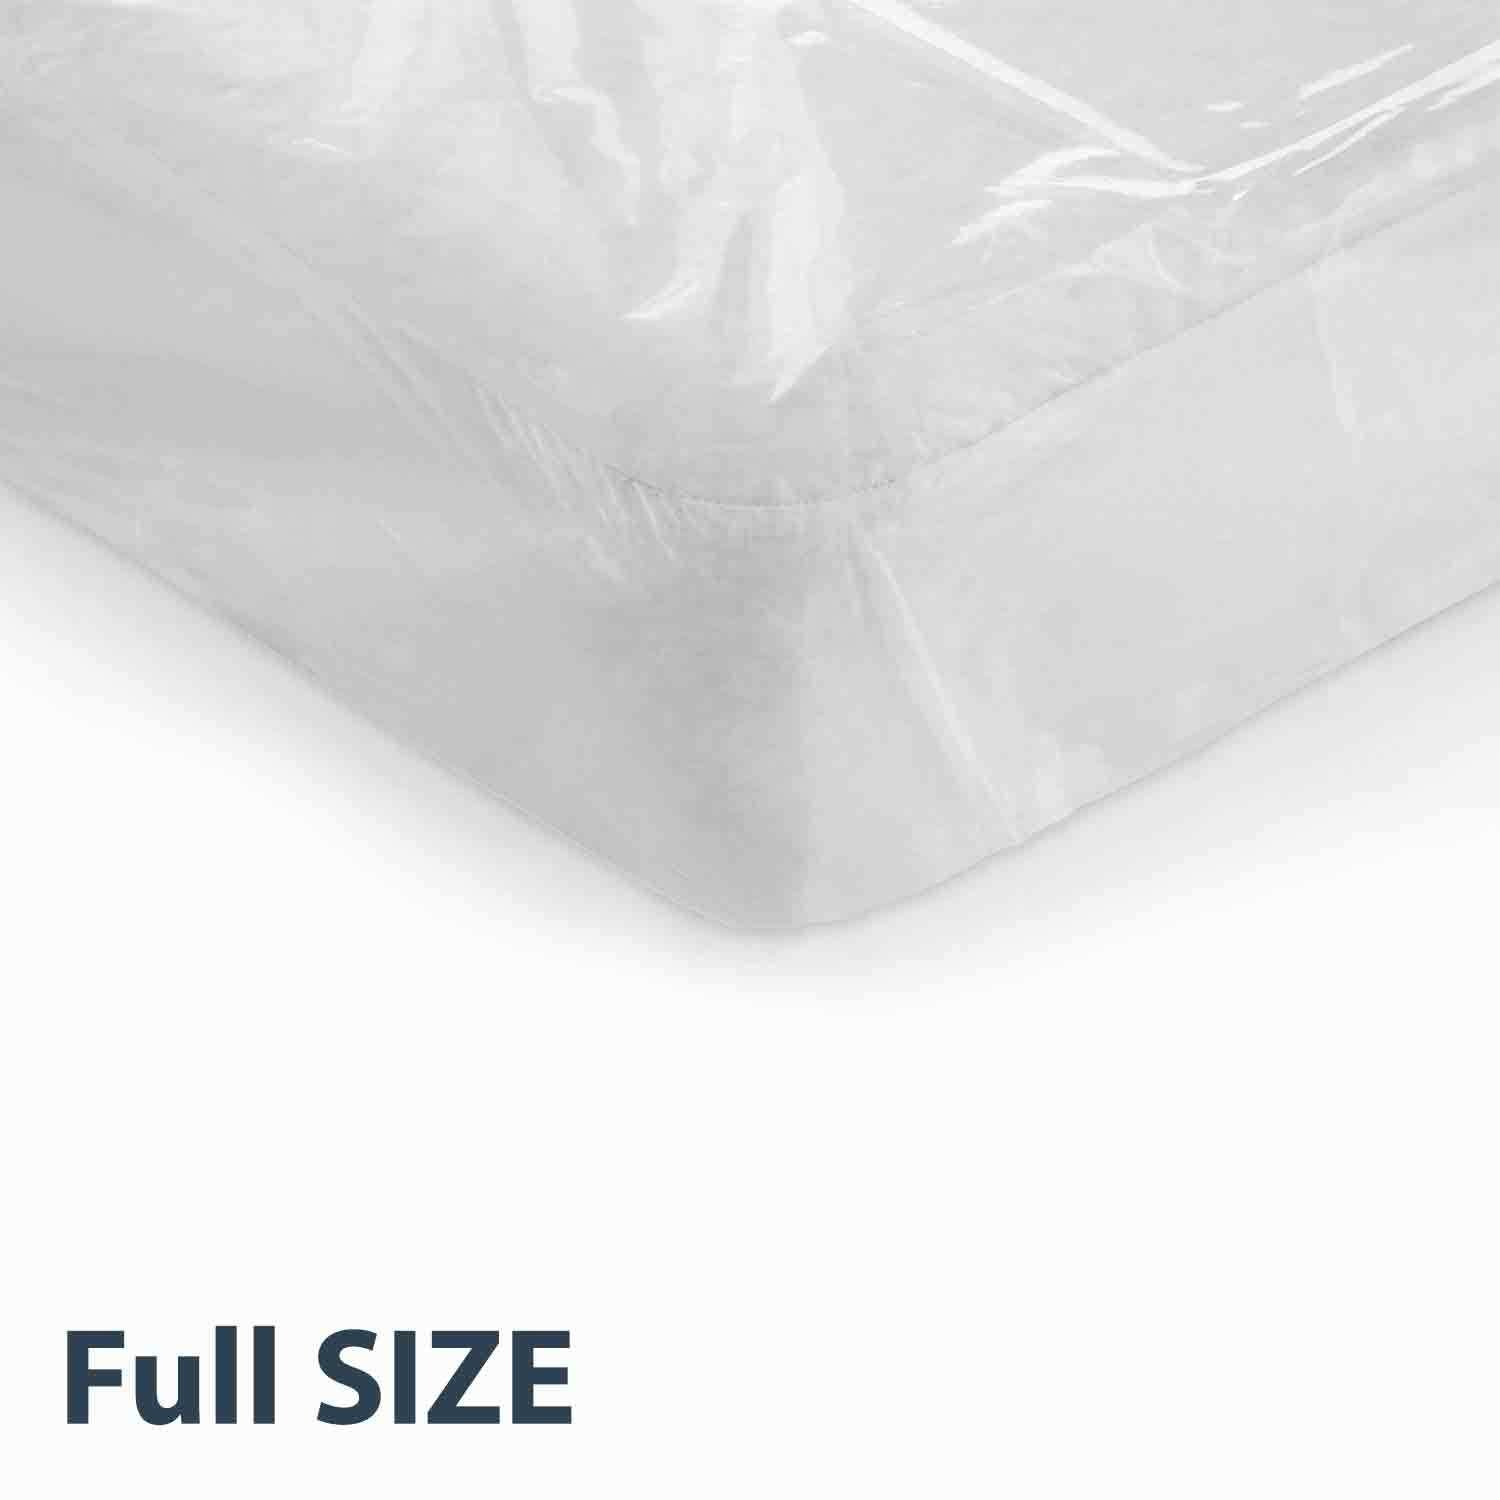 Full Size Mattress Bag Cover For Protection During Moving FMBC-1